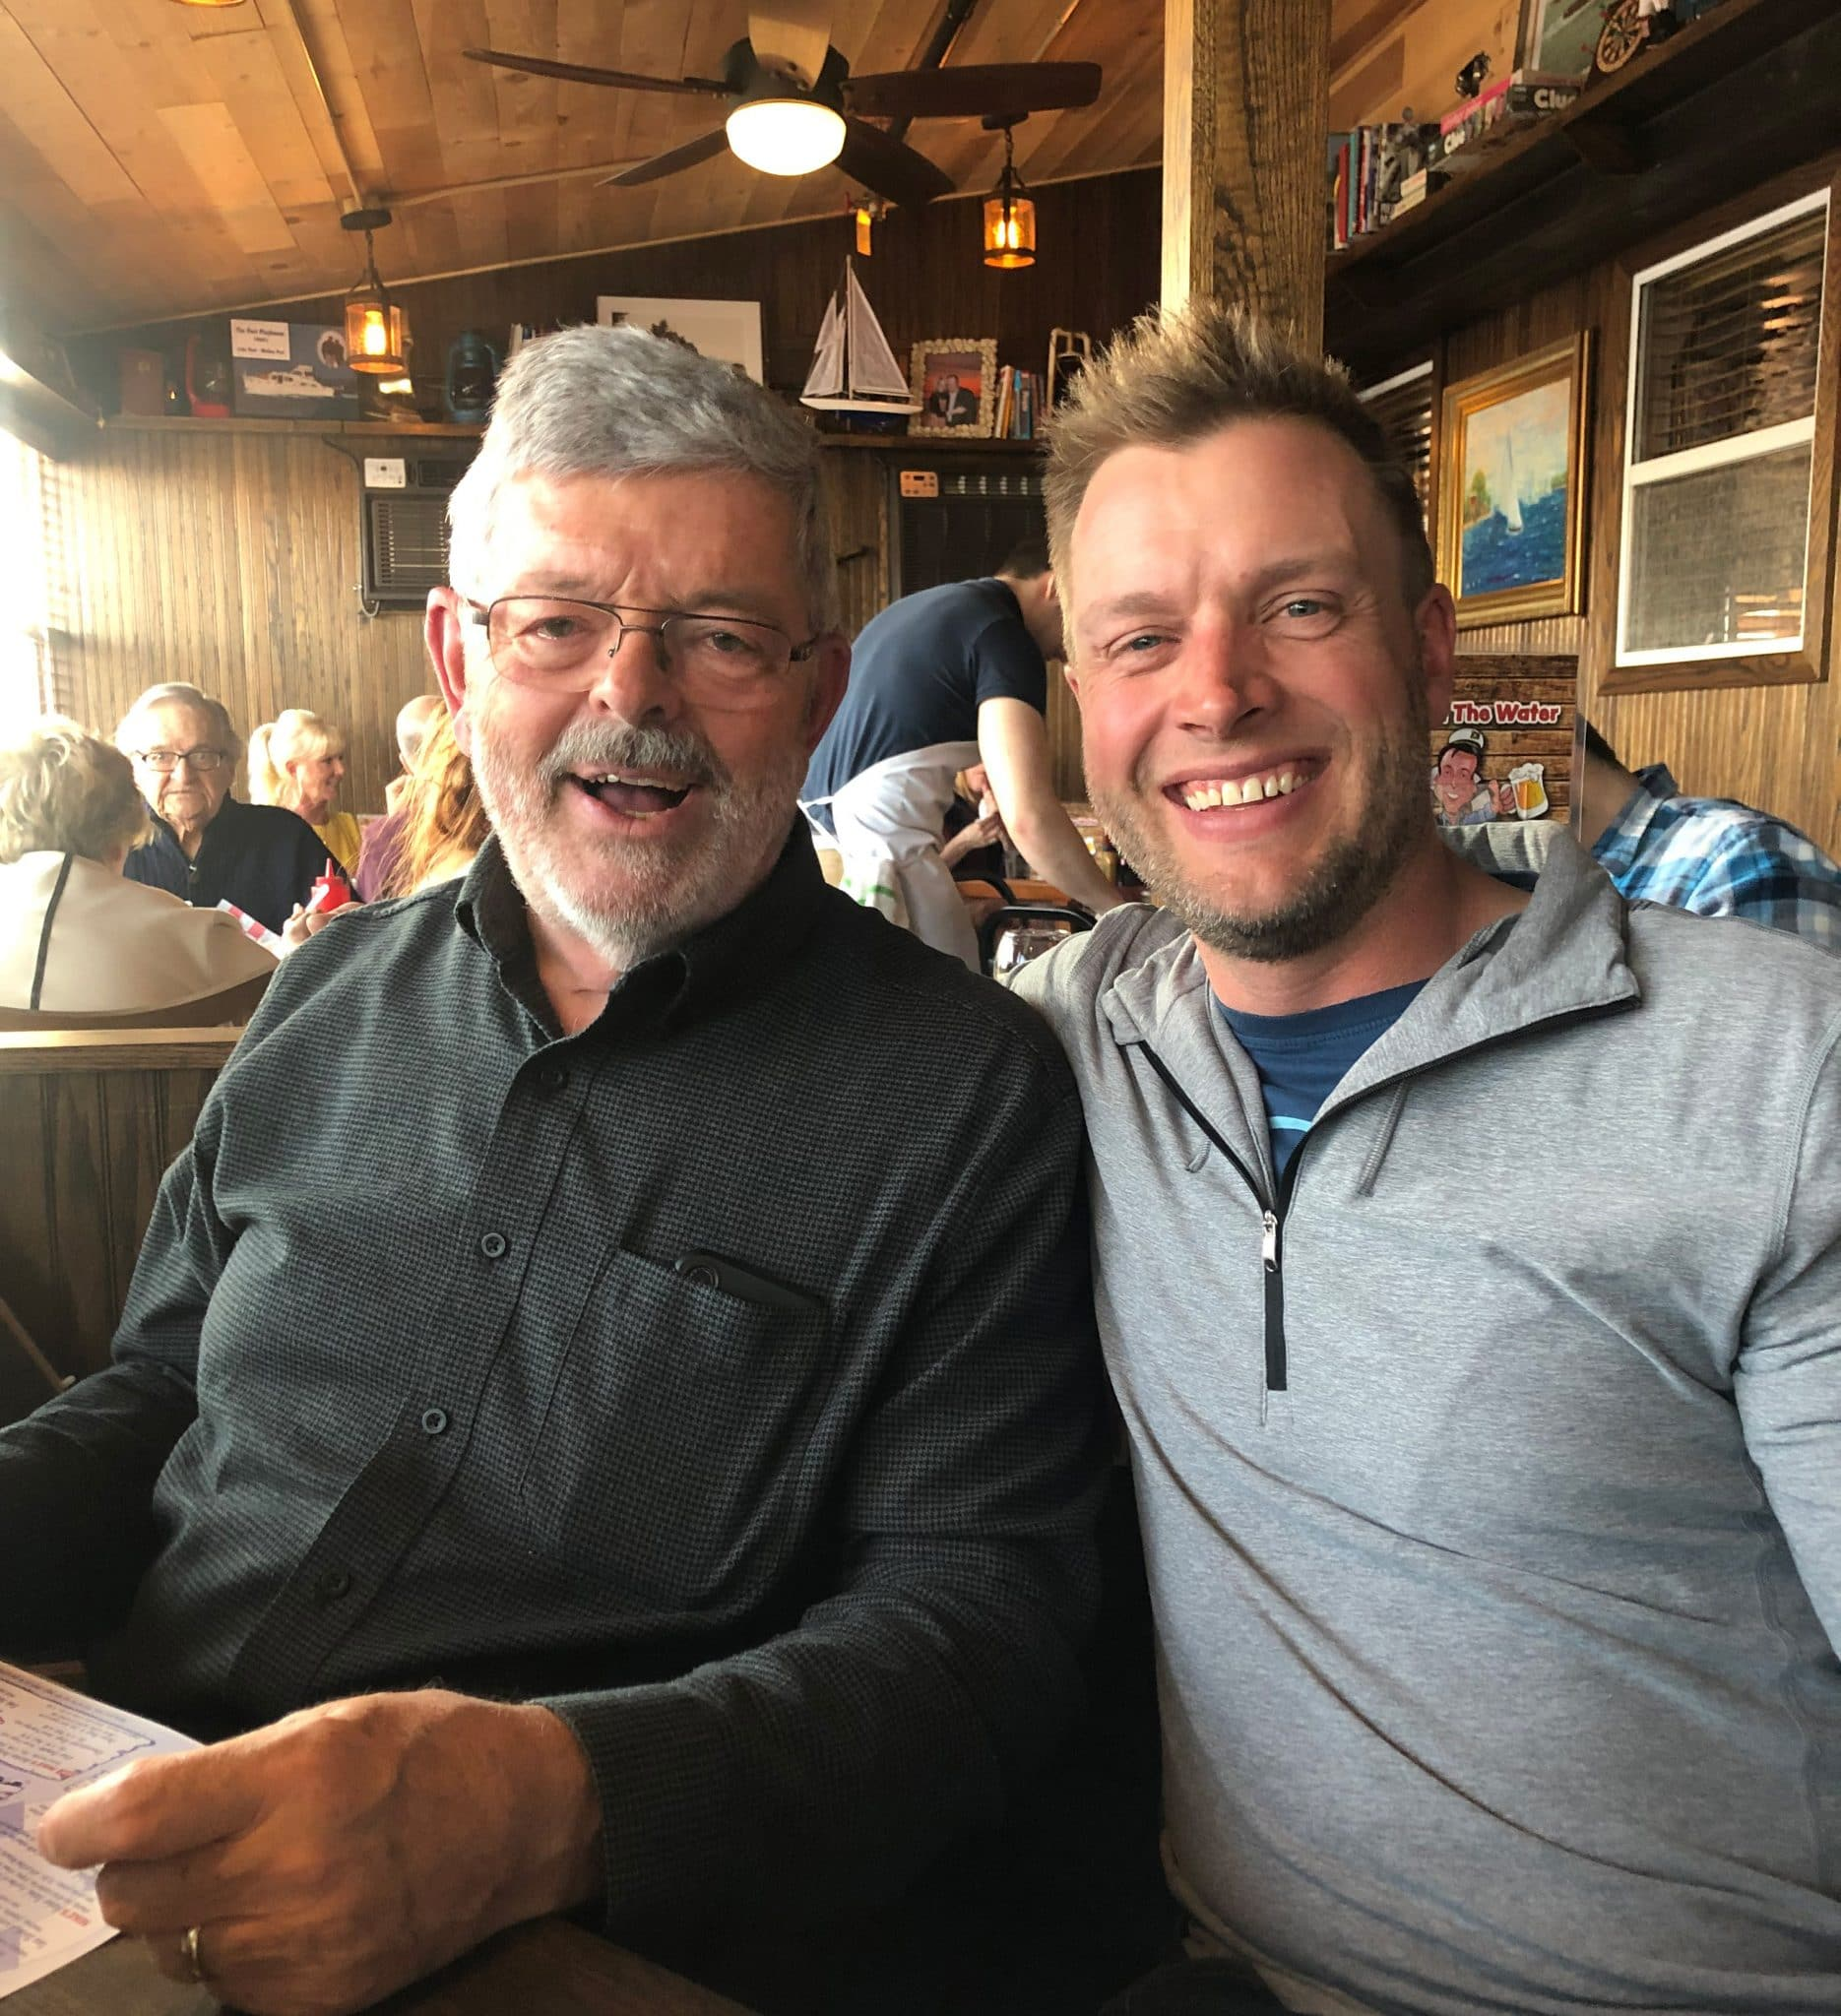 Doug Moody with son in restaurant